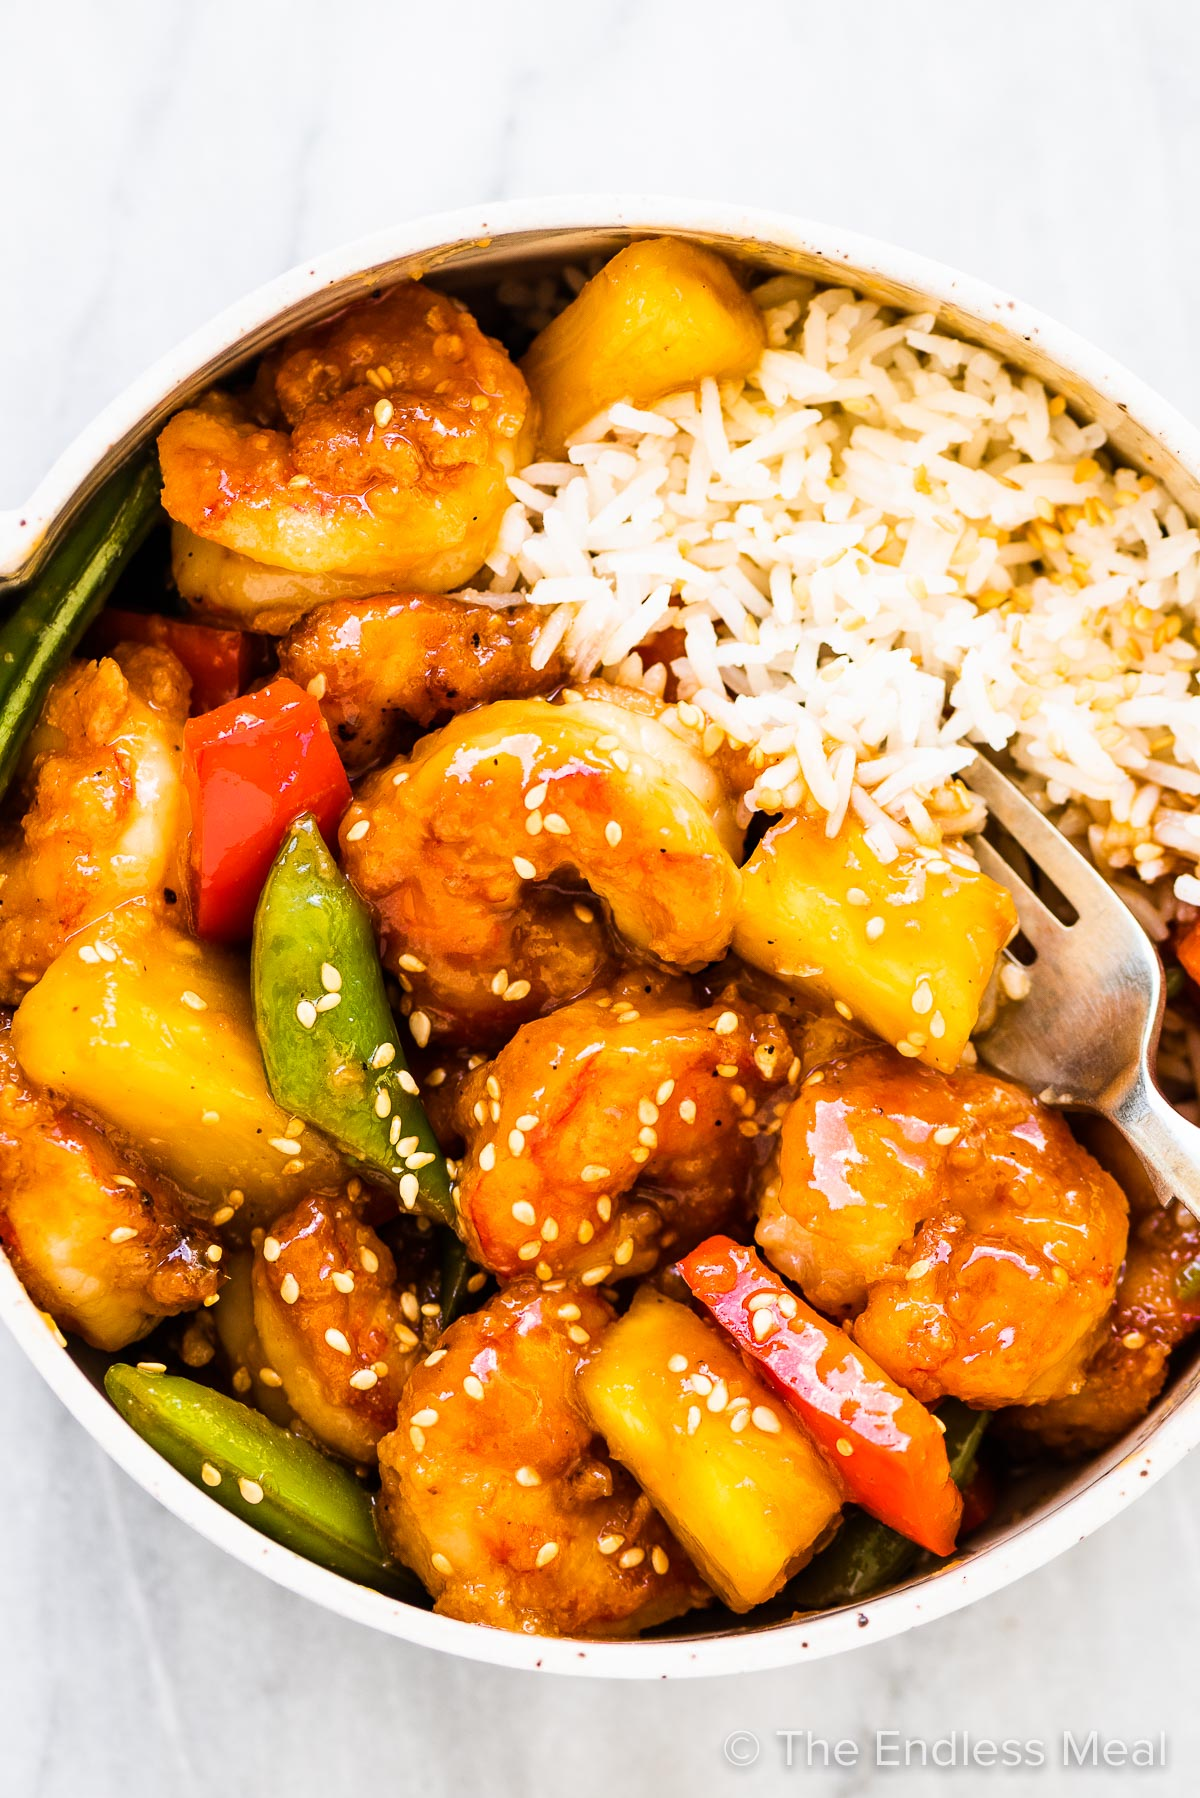 A bowl with rice and stir fried shrimp and pineapples.